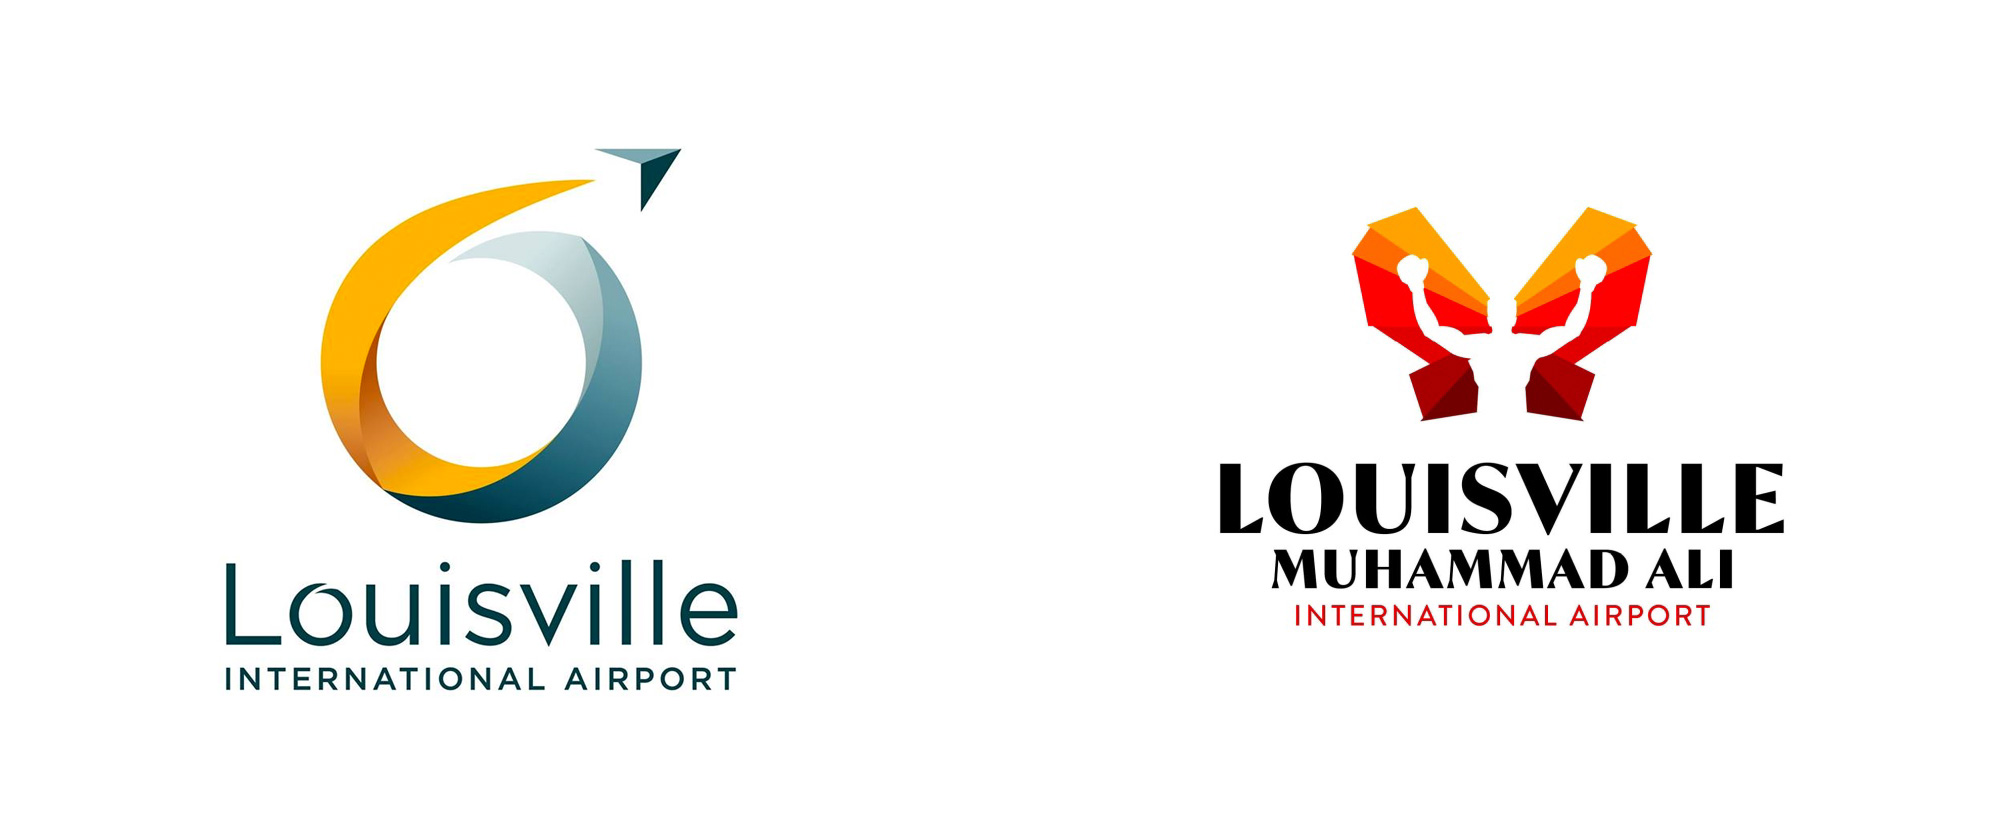 New Logo for Louisville Muhammad Ali International Airport by Badge Design Studio